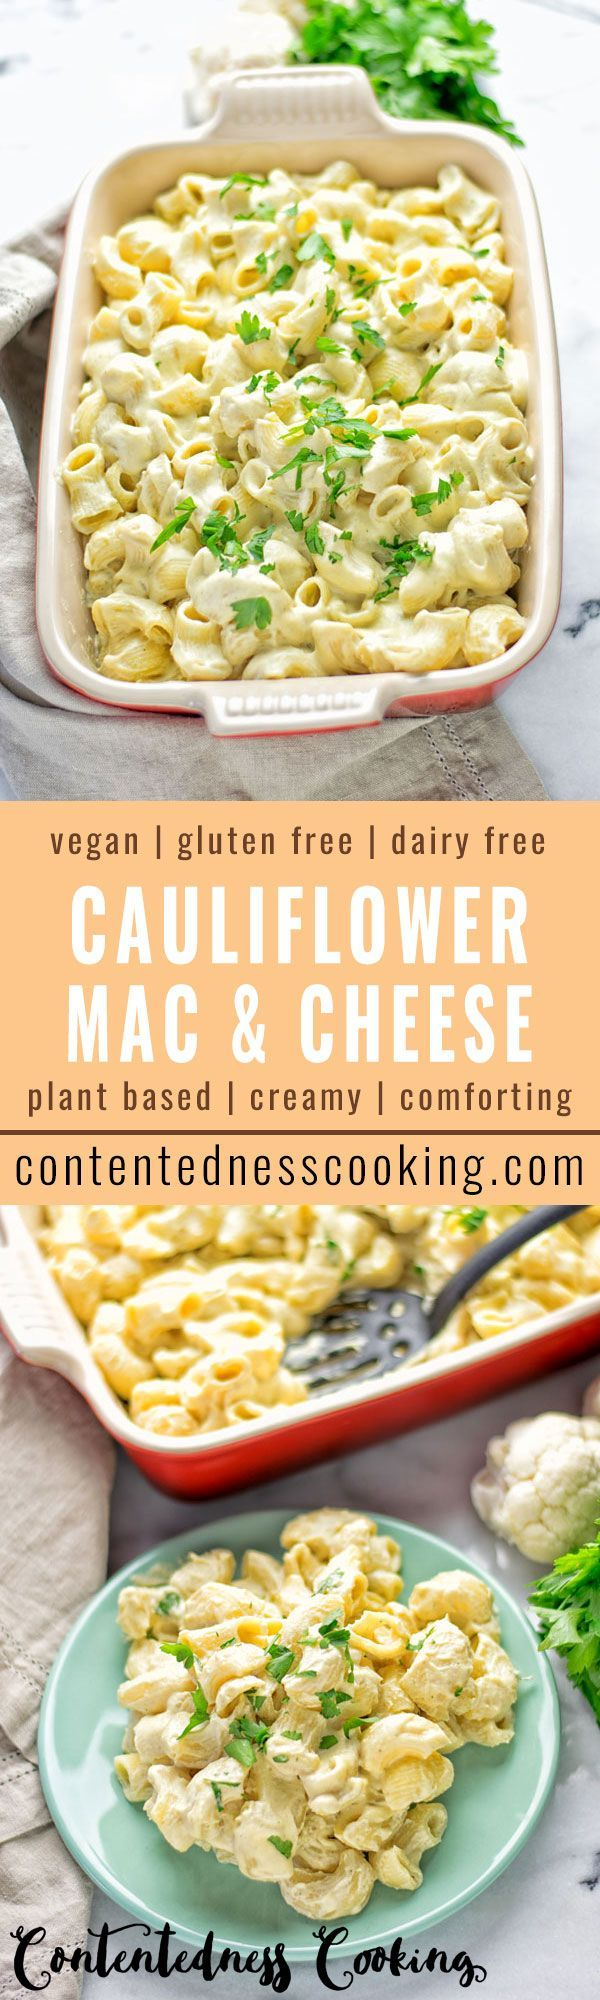 Out of this world: Cauliflower Mac & Cheese. Entirely vegan, gluten free and so delicious and comforting. Everyone will love this timeless winner.